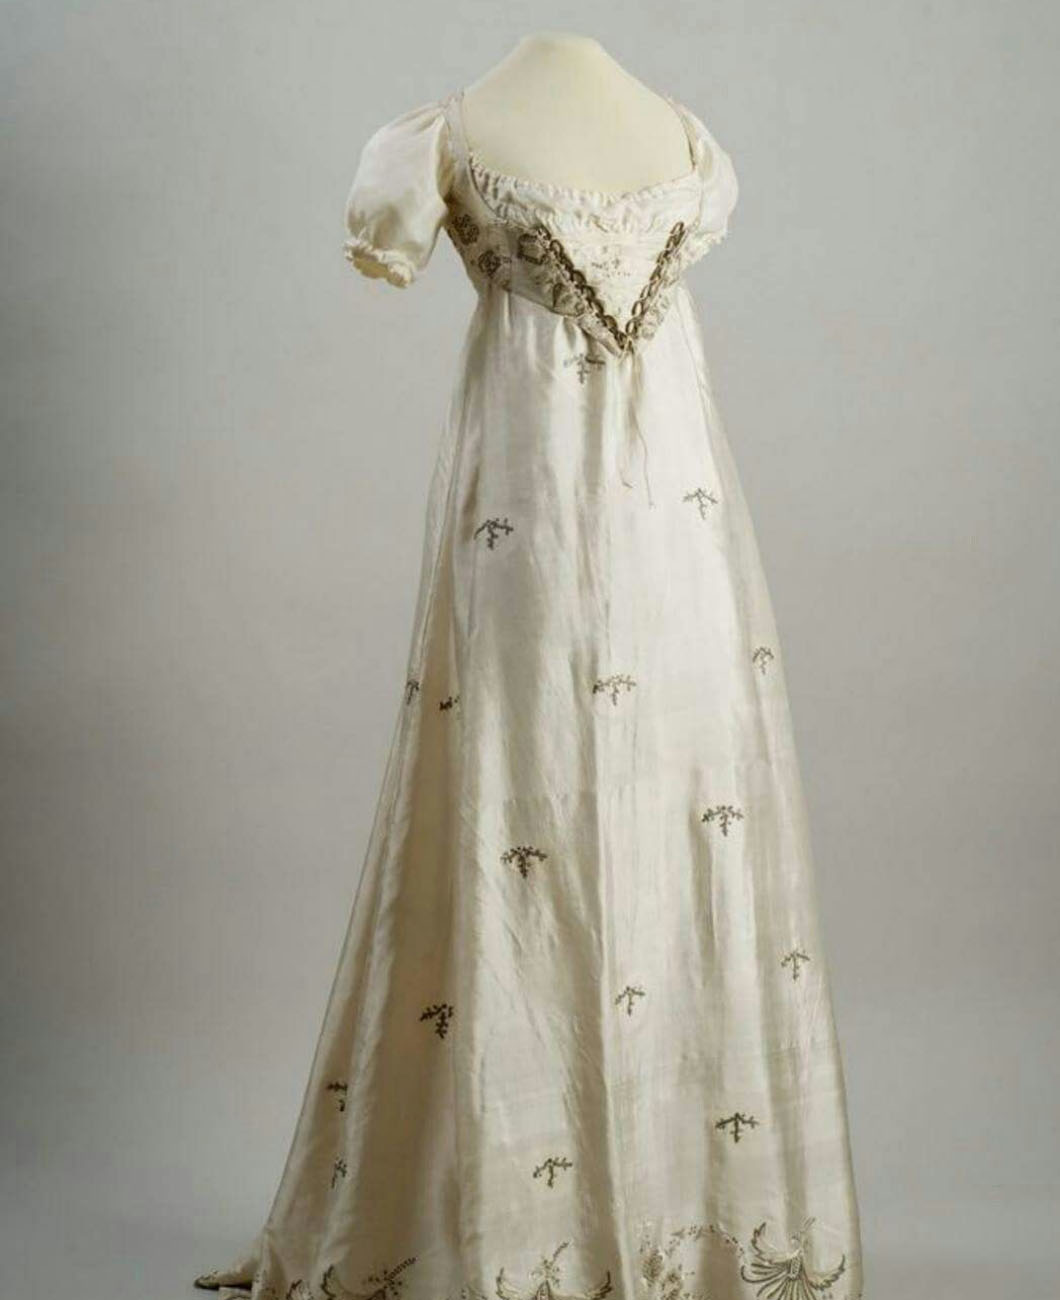 empire-waist-silhouette-la-polo-lapolo-fashion-trend-gown-high-waisted-victorian-regency